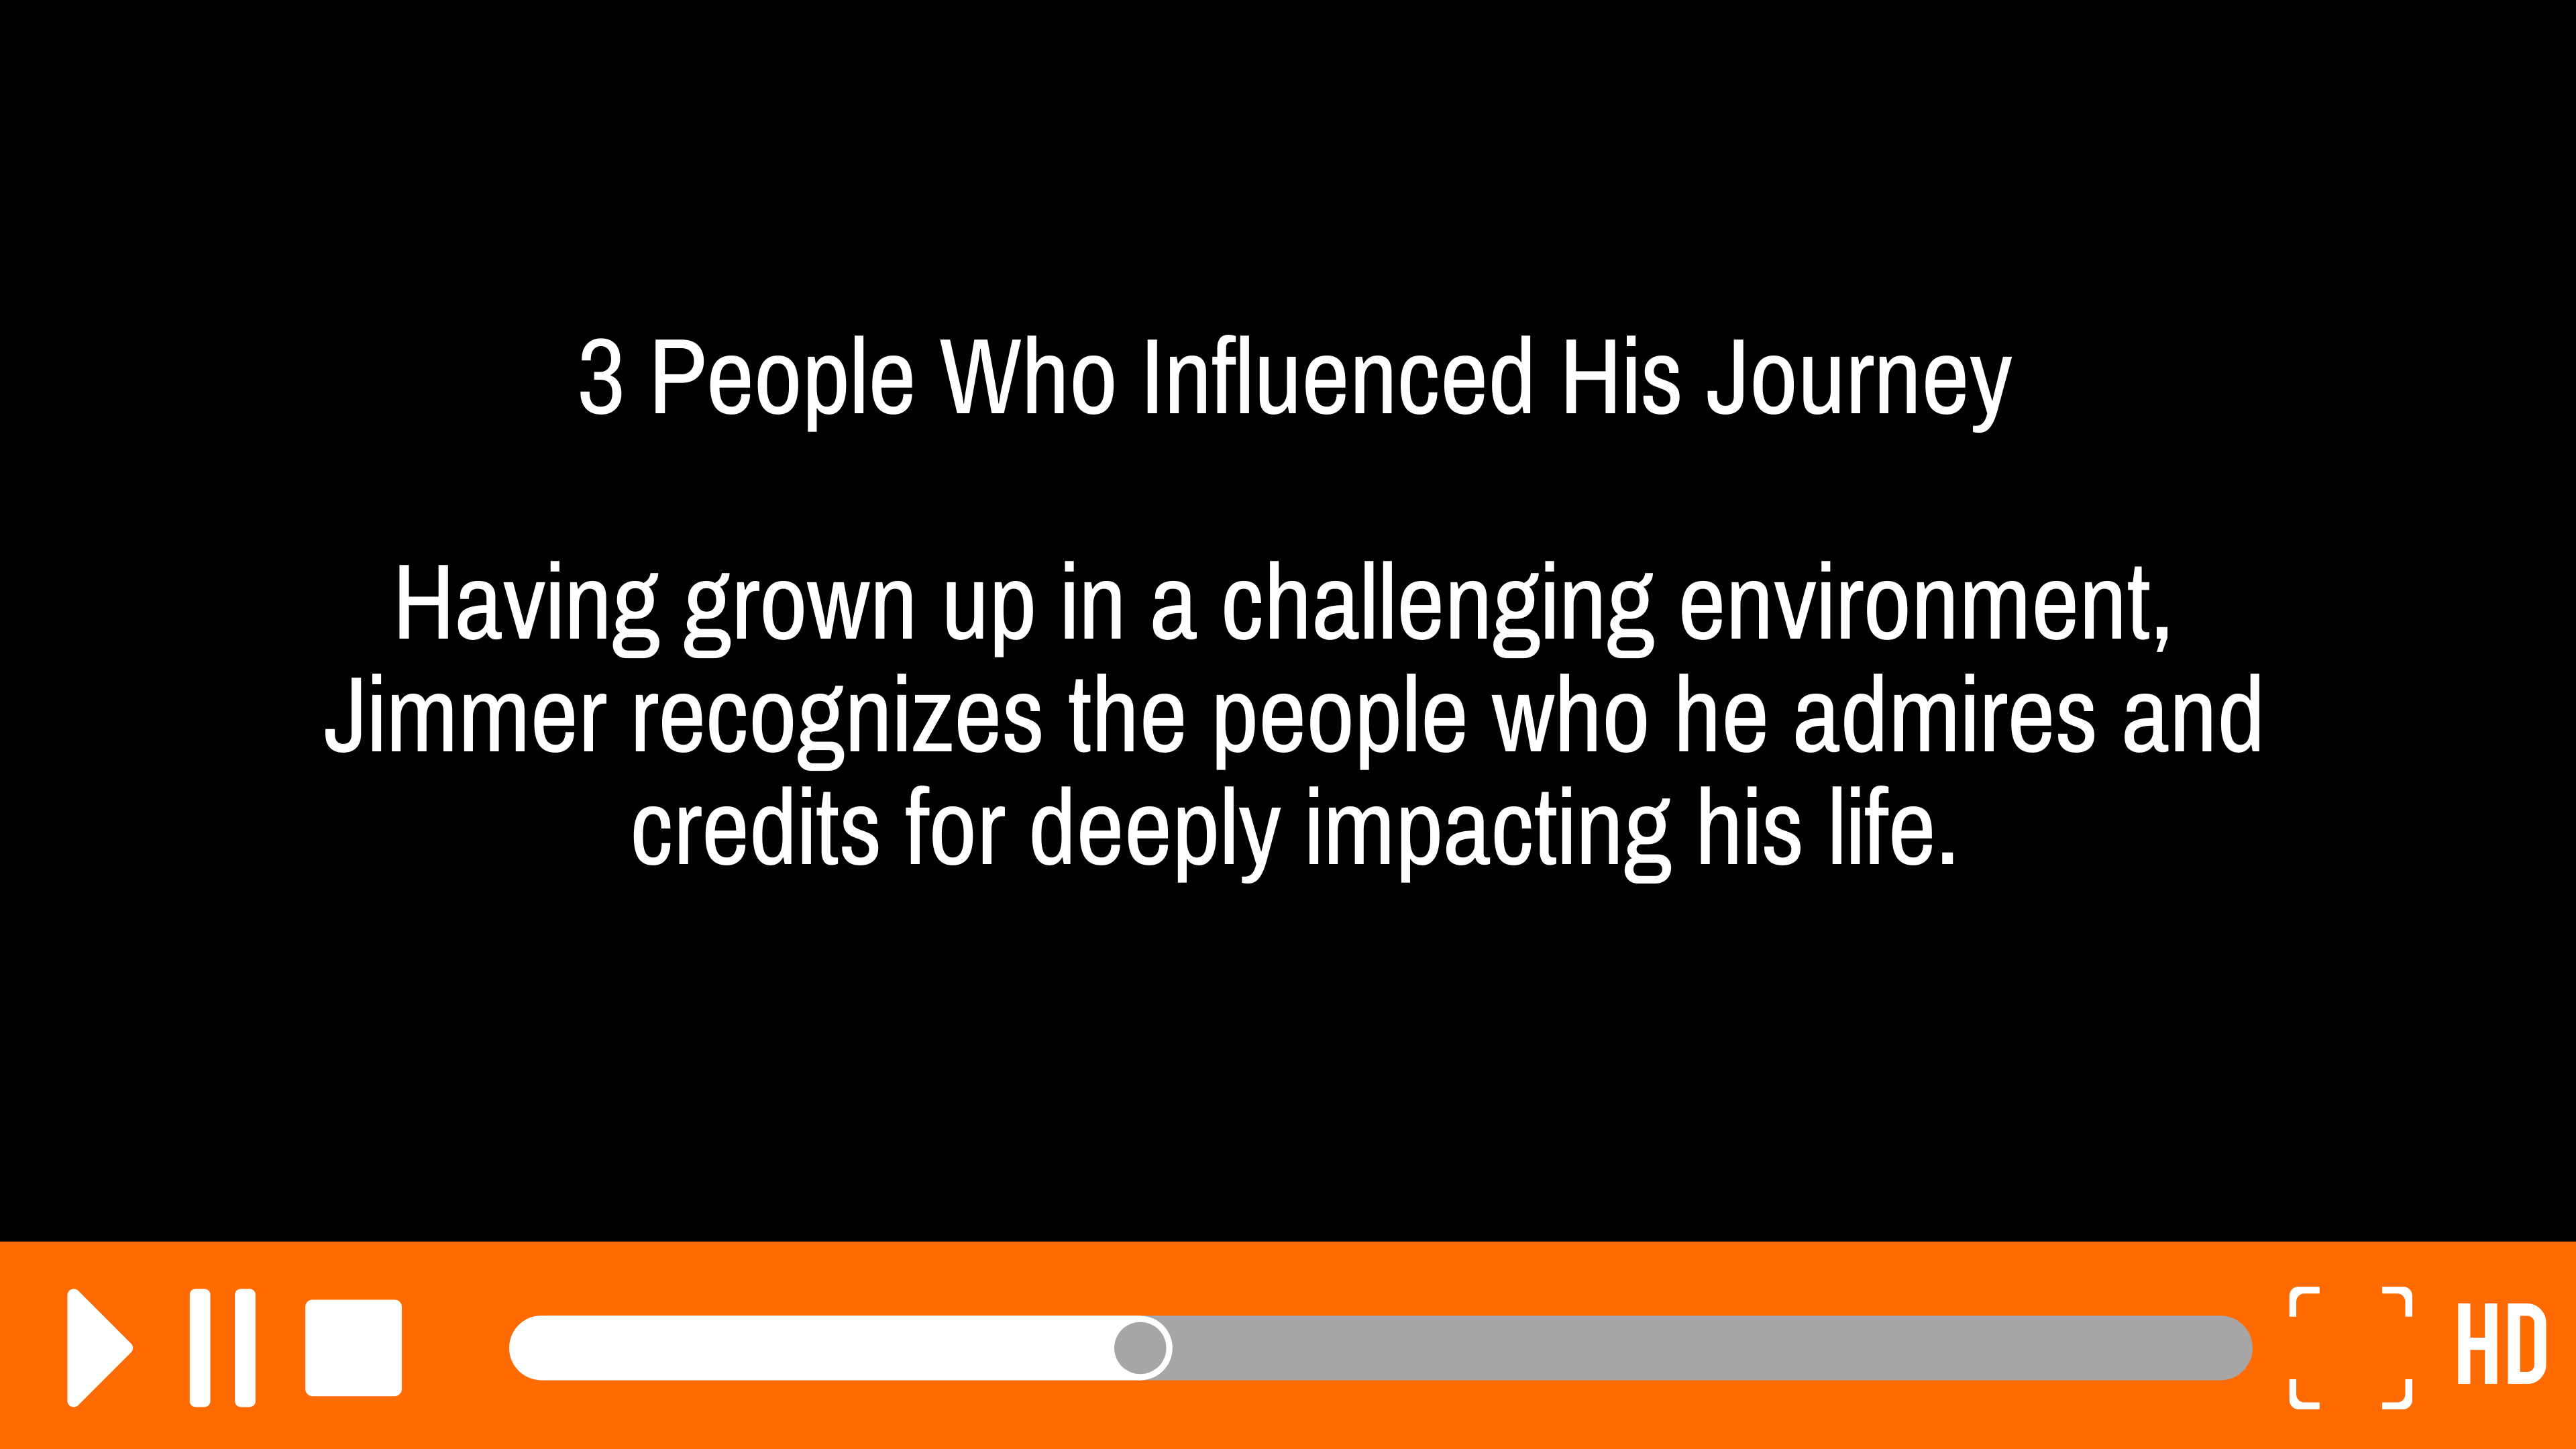 People Who Influenced His Journey